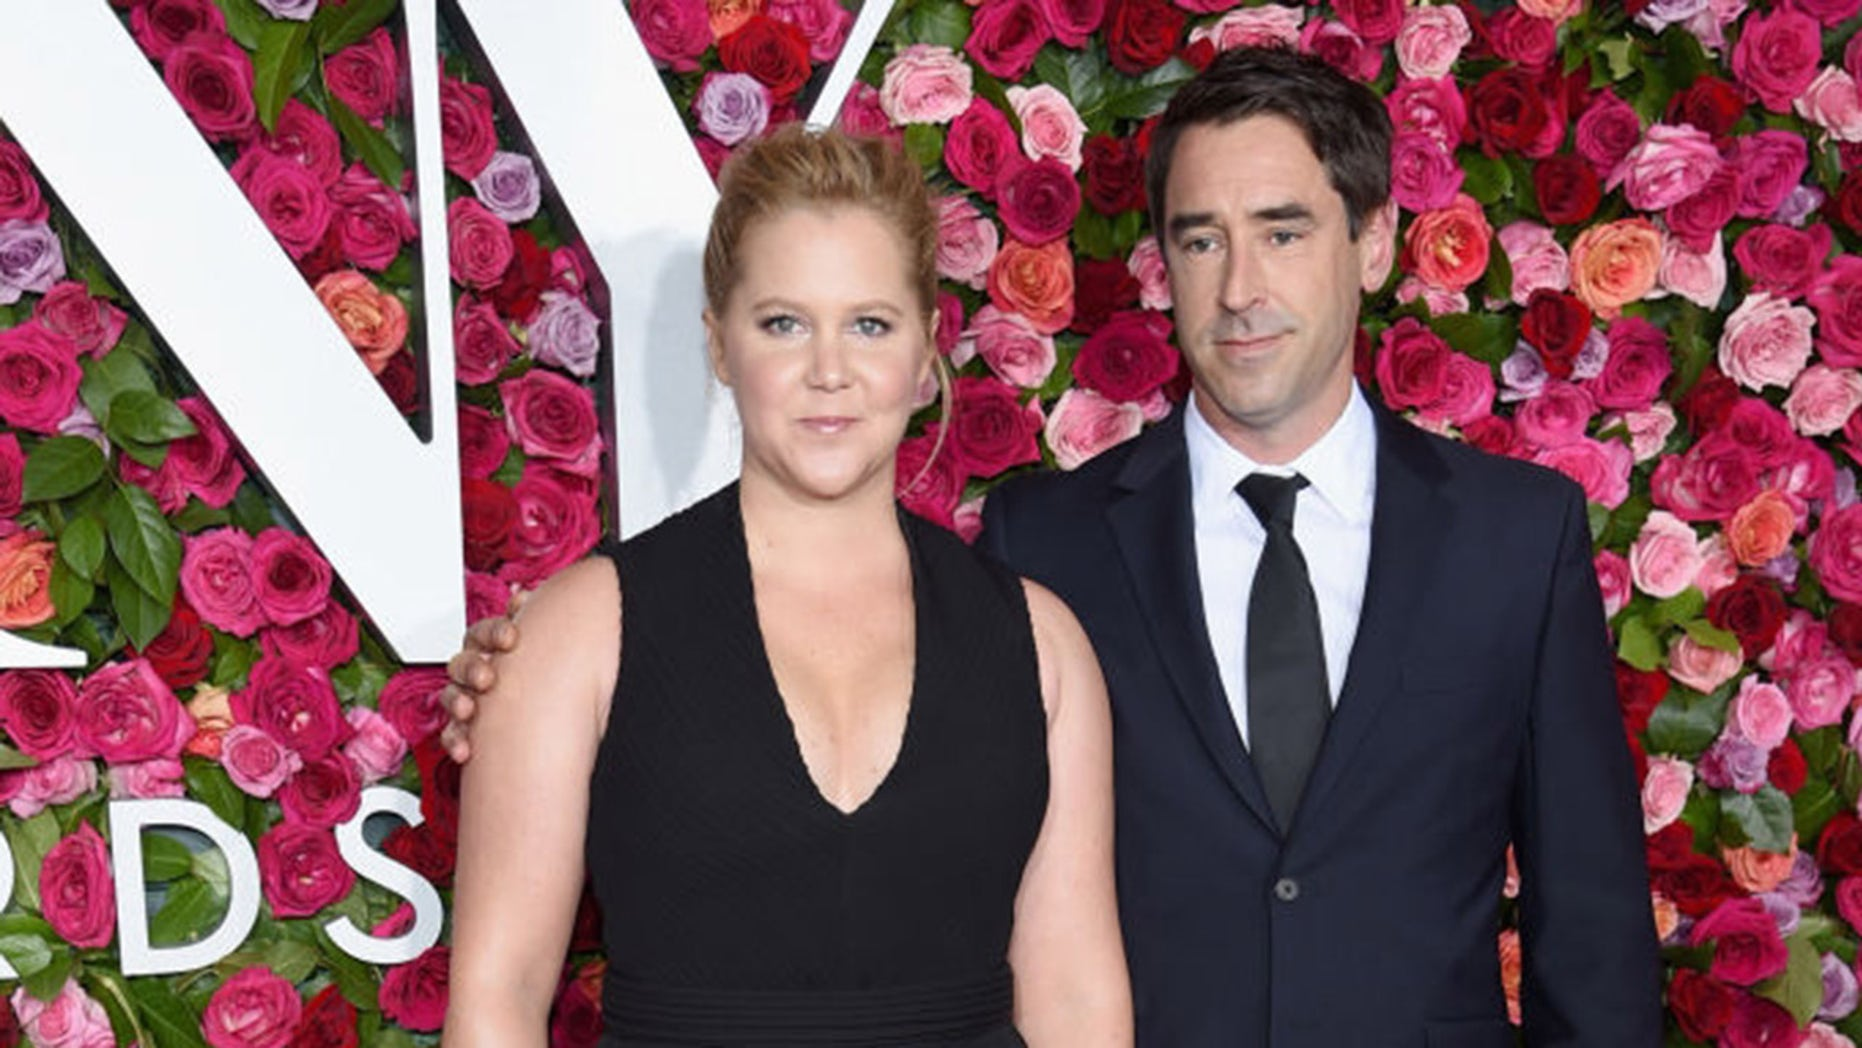 Amy Schumer (L) and Chris Fischer attend the 72nd Annual Tony Awards at Radio City Music Hall on June 10, 2018 in New York City.